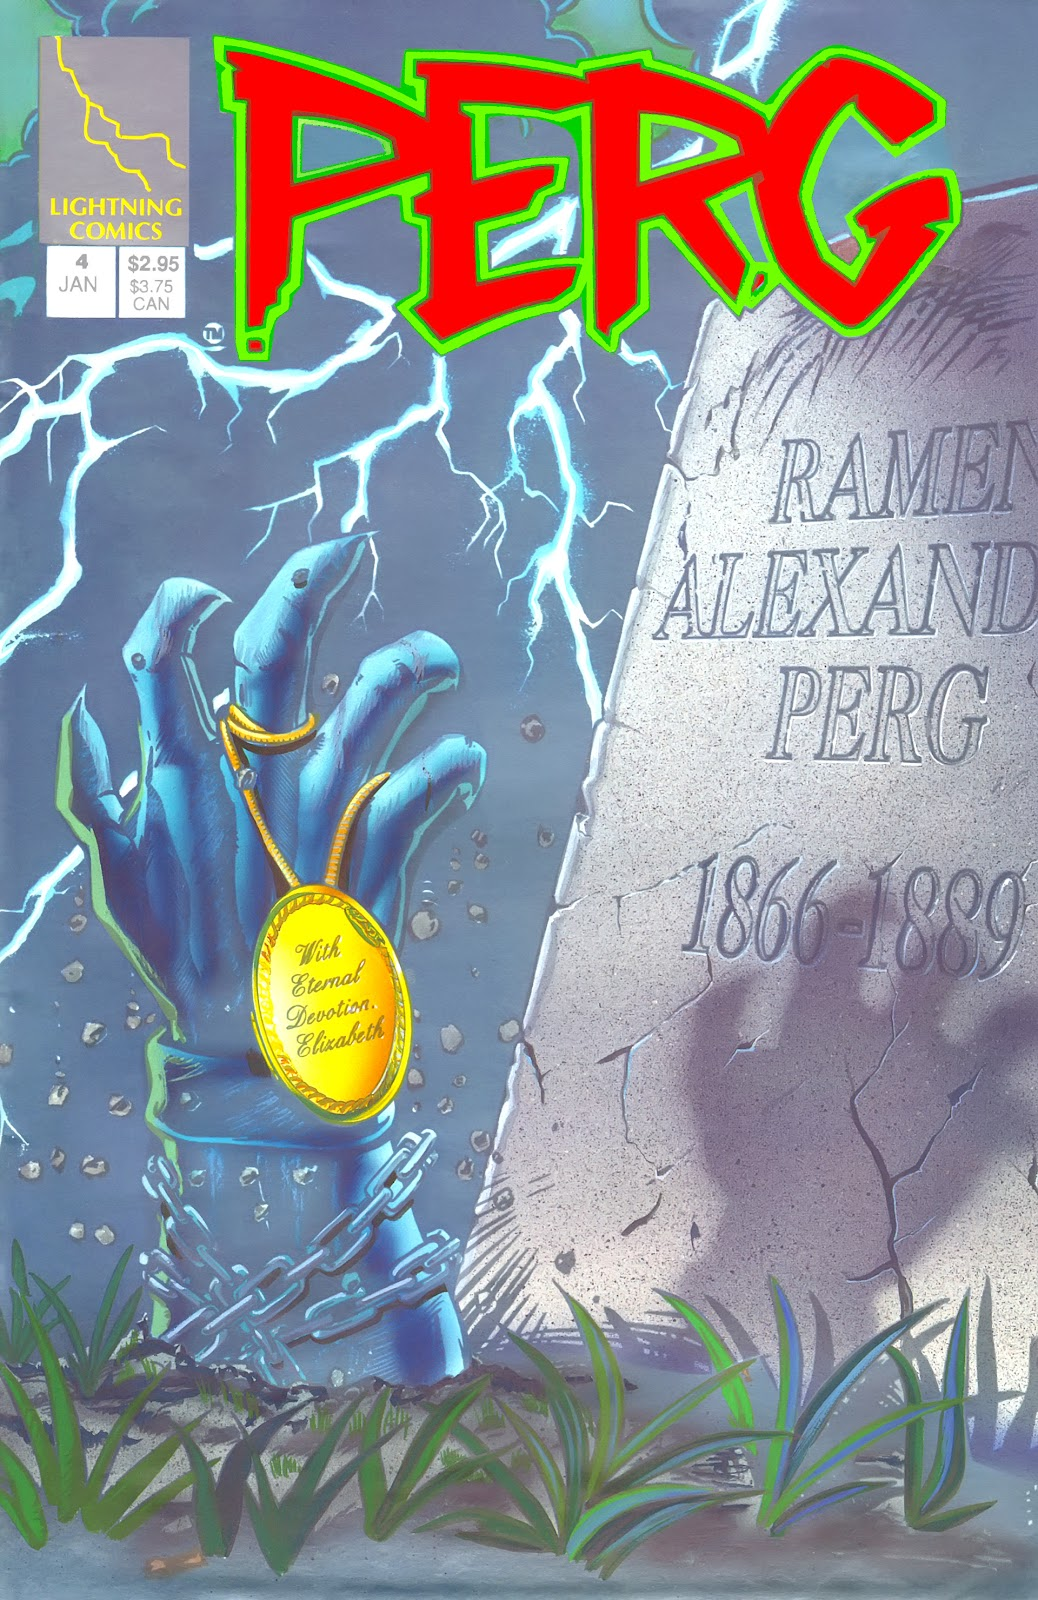 Read online Perg comic -  Issue #4 - 2